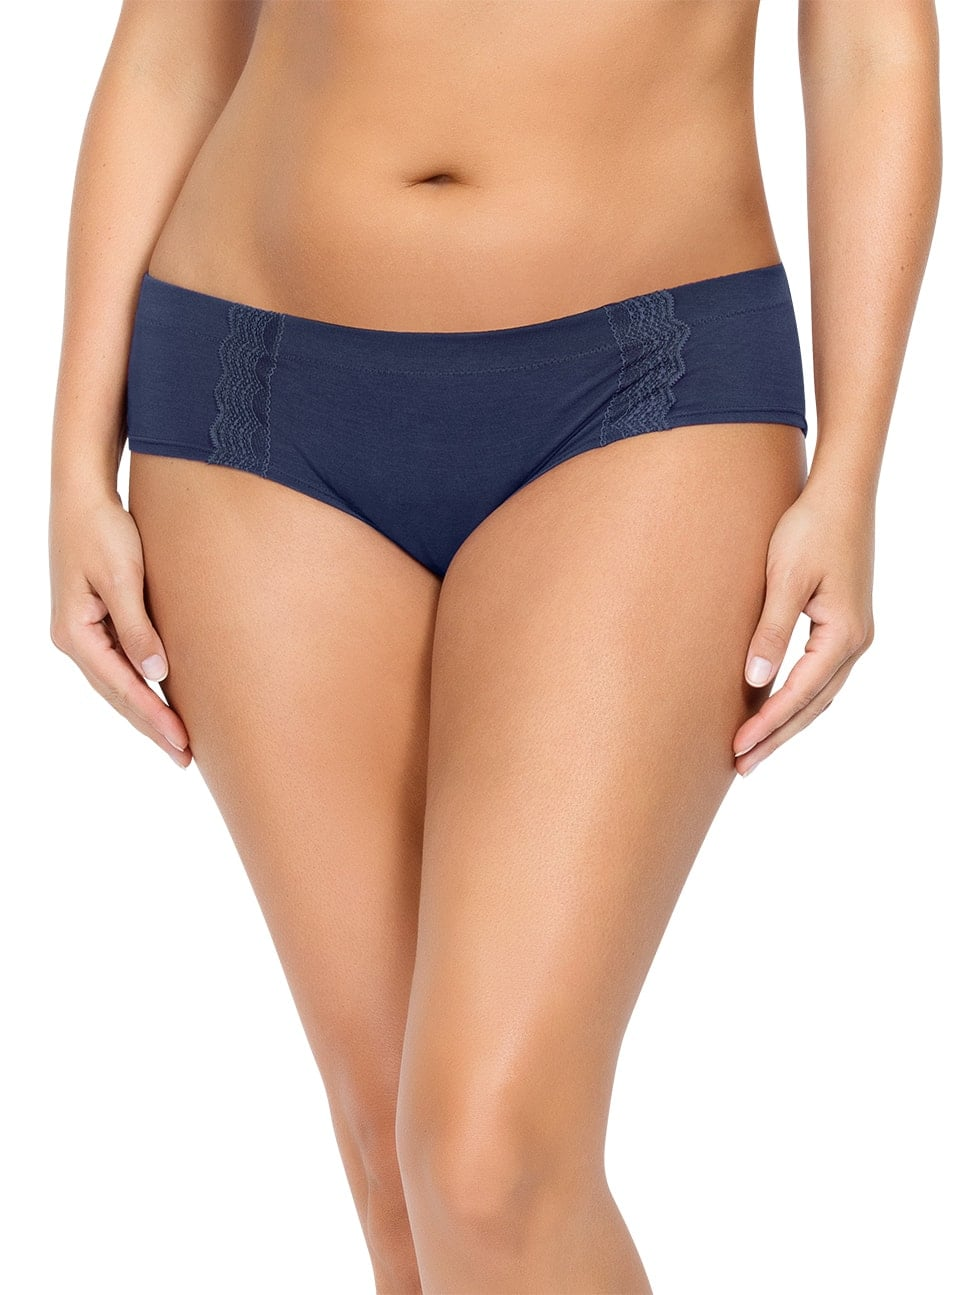 PARFAIT Dalis HipsterP5645 NavyBlue Front - Dalis Hipster - Navy - P5645